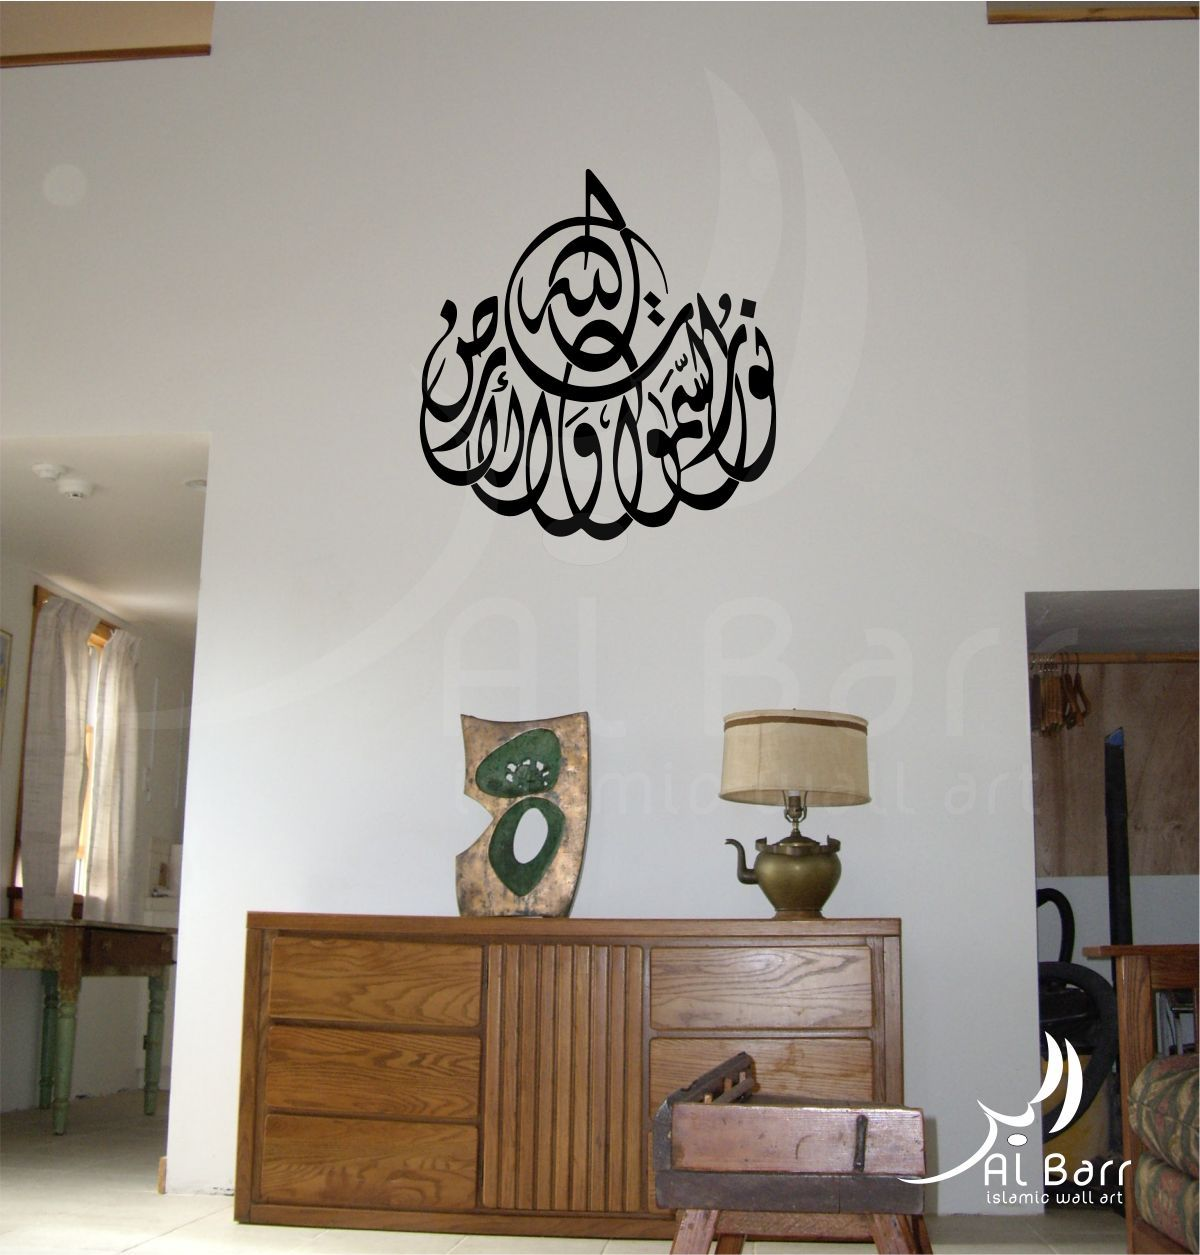 Islamic Wall Decals, Wall Stickers For Home Decor, From